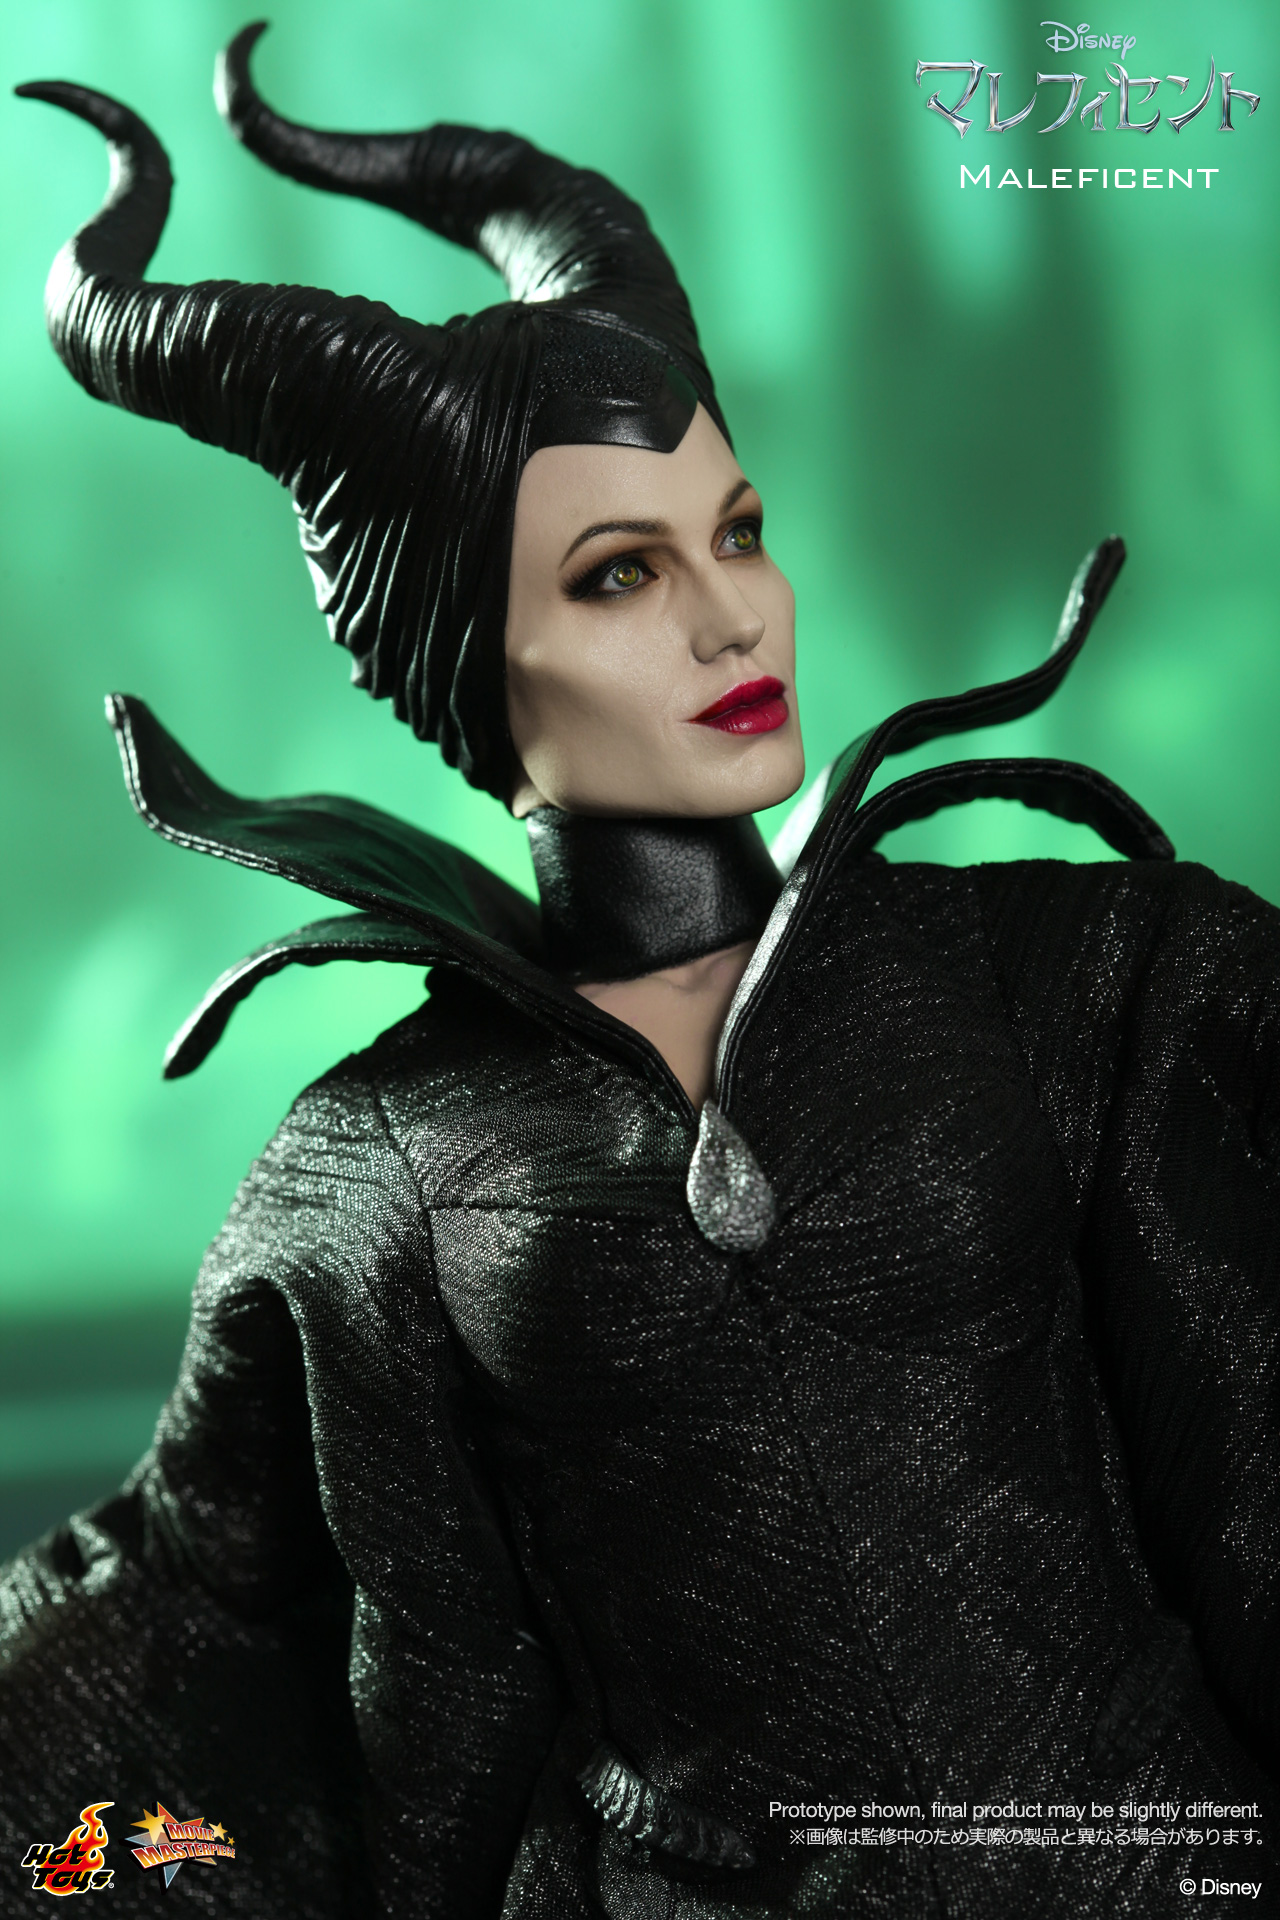 http://www.hottoys.jp/catalog/swfdata/ht3429/imgview_image/up_12.jpg